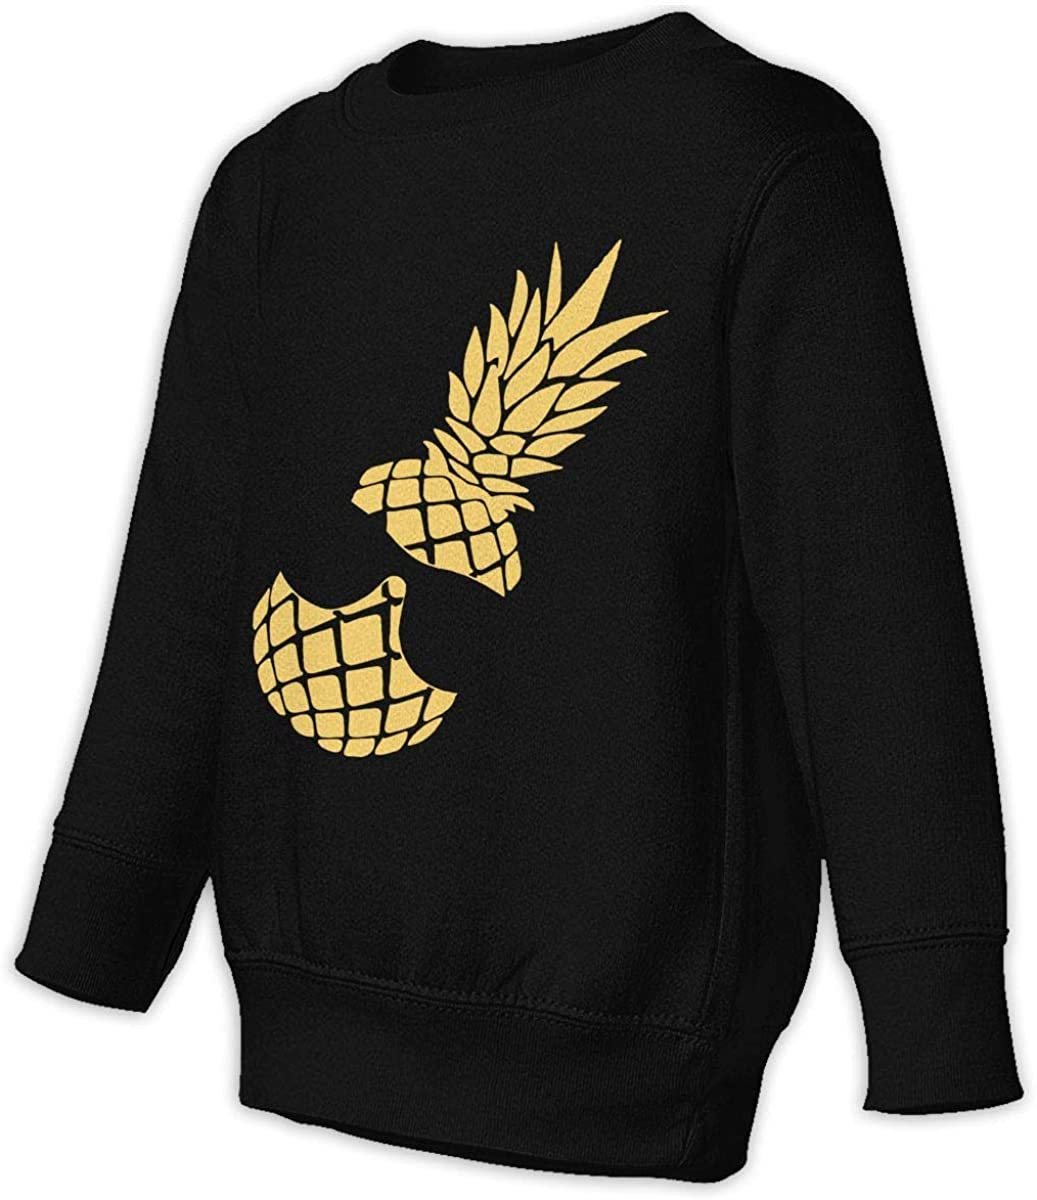 wudici Pineapple Boys Girls Pullover Sweaters Crewneck Sweatshirts Clothes for 2-6 Years Old Children